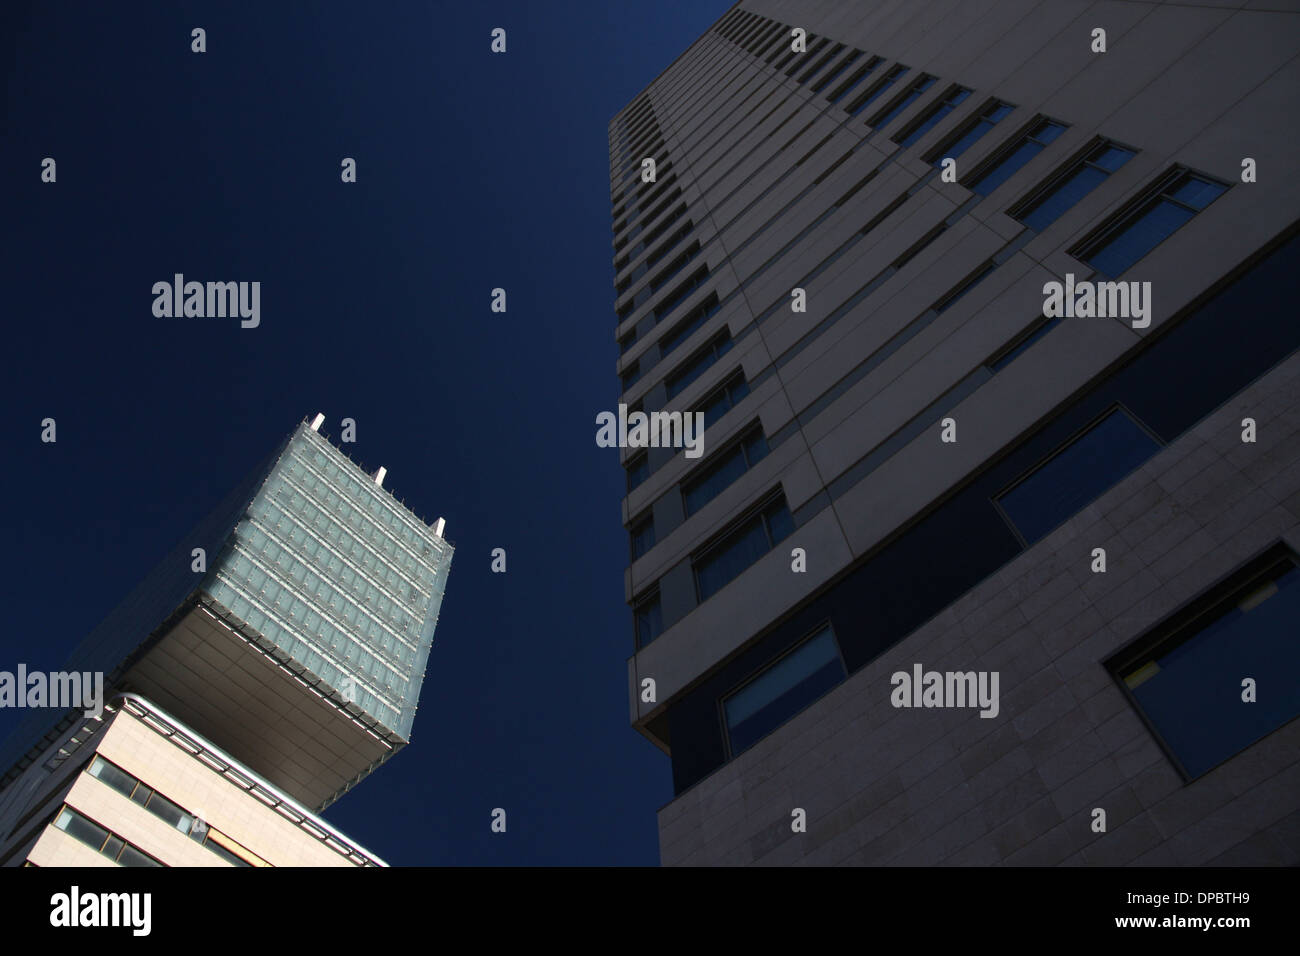 Hilton Diagonal Mar in Diagonal Mar suburb in Barcelona, Catalonia, Spain Stock Photo